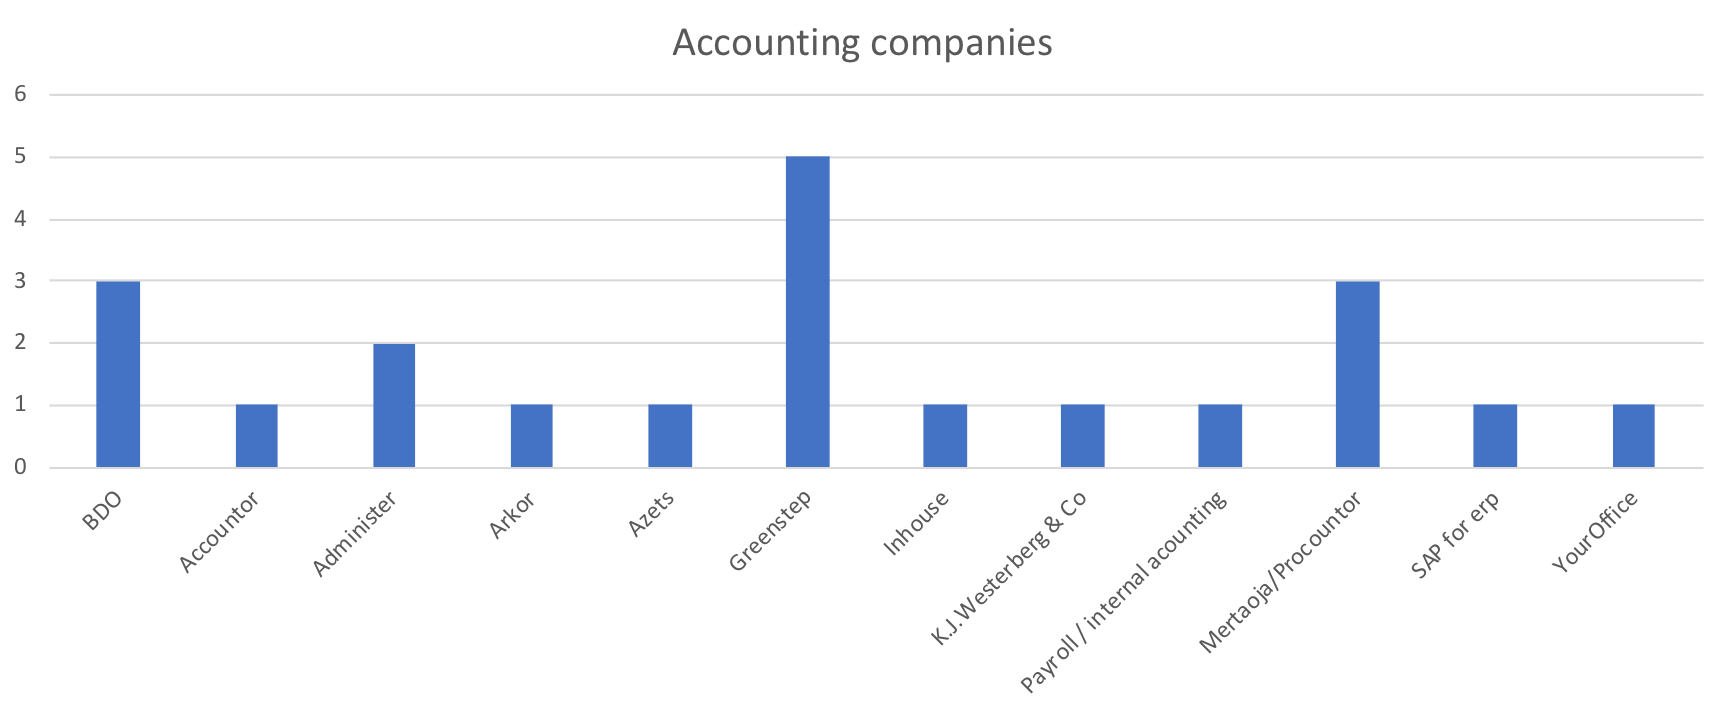 Accounting companies.png